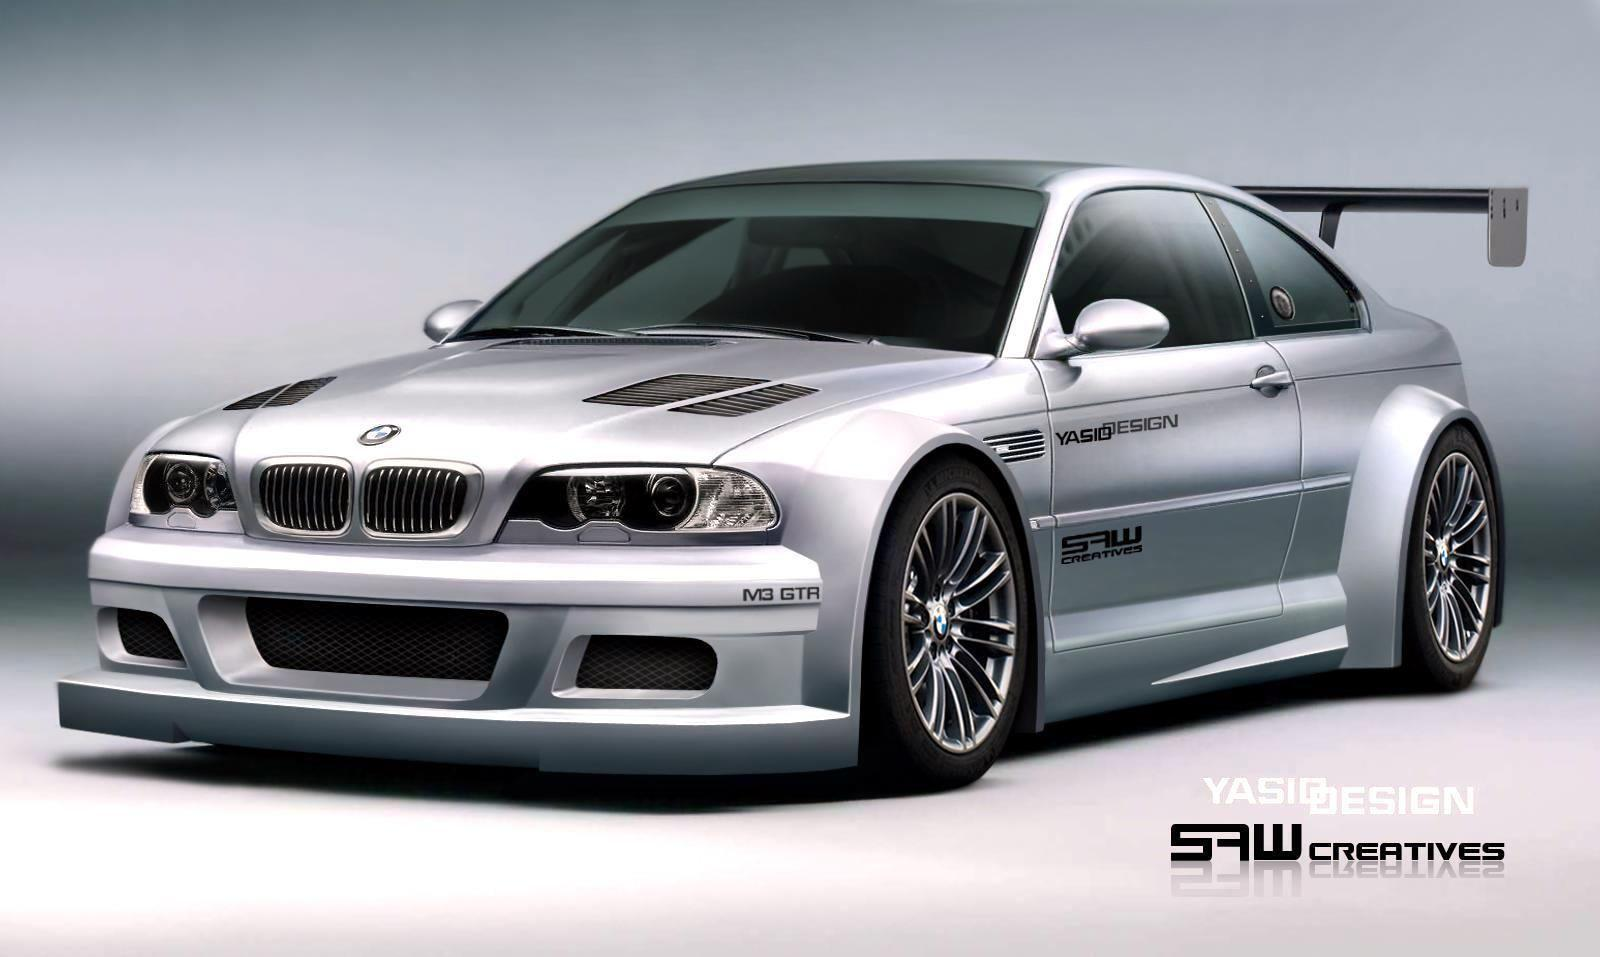 Make This Useful: BMW M3 GTR